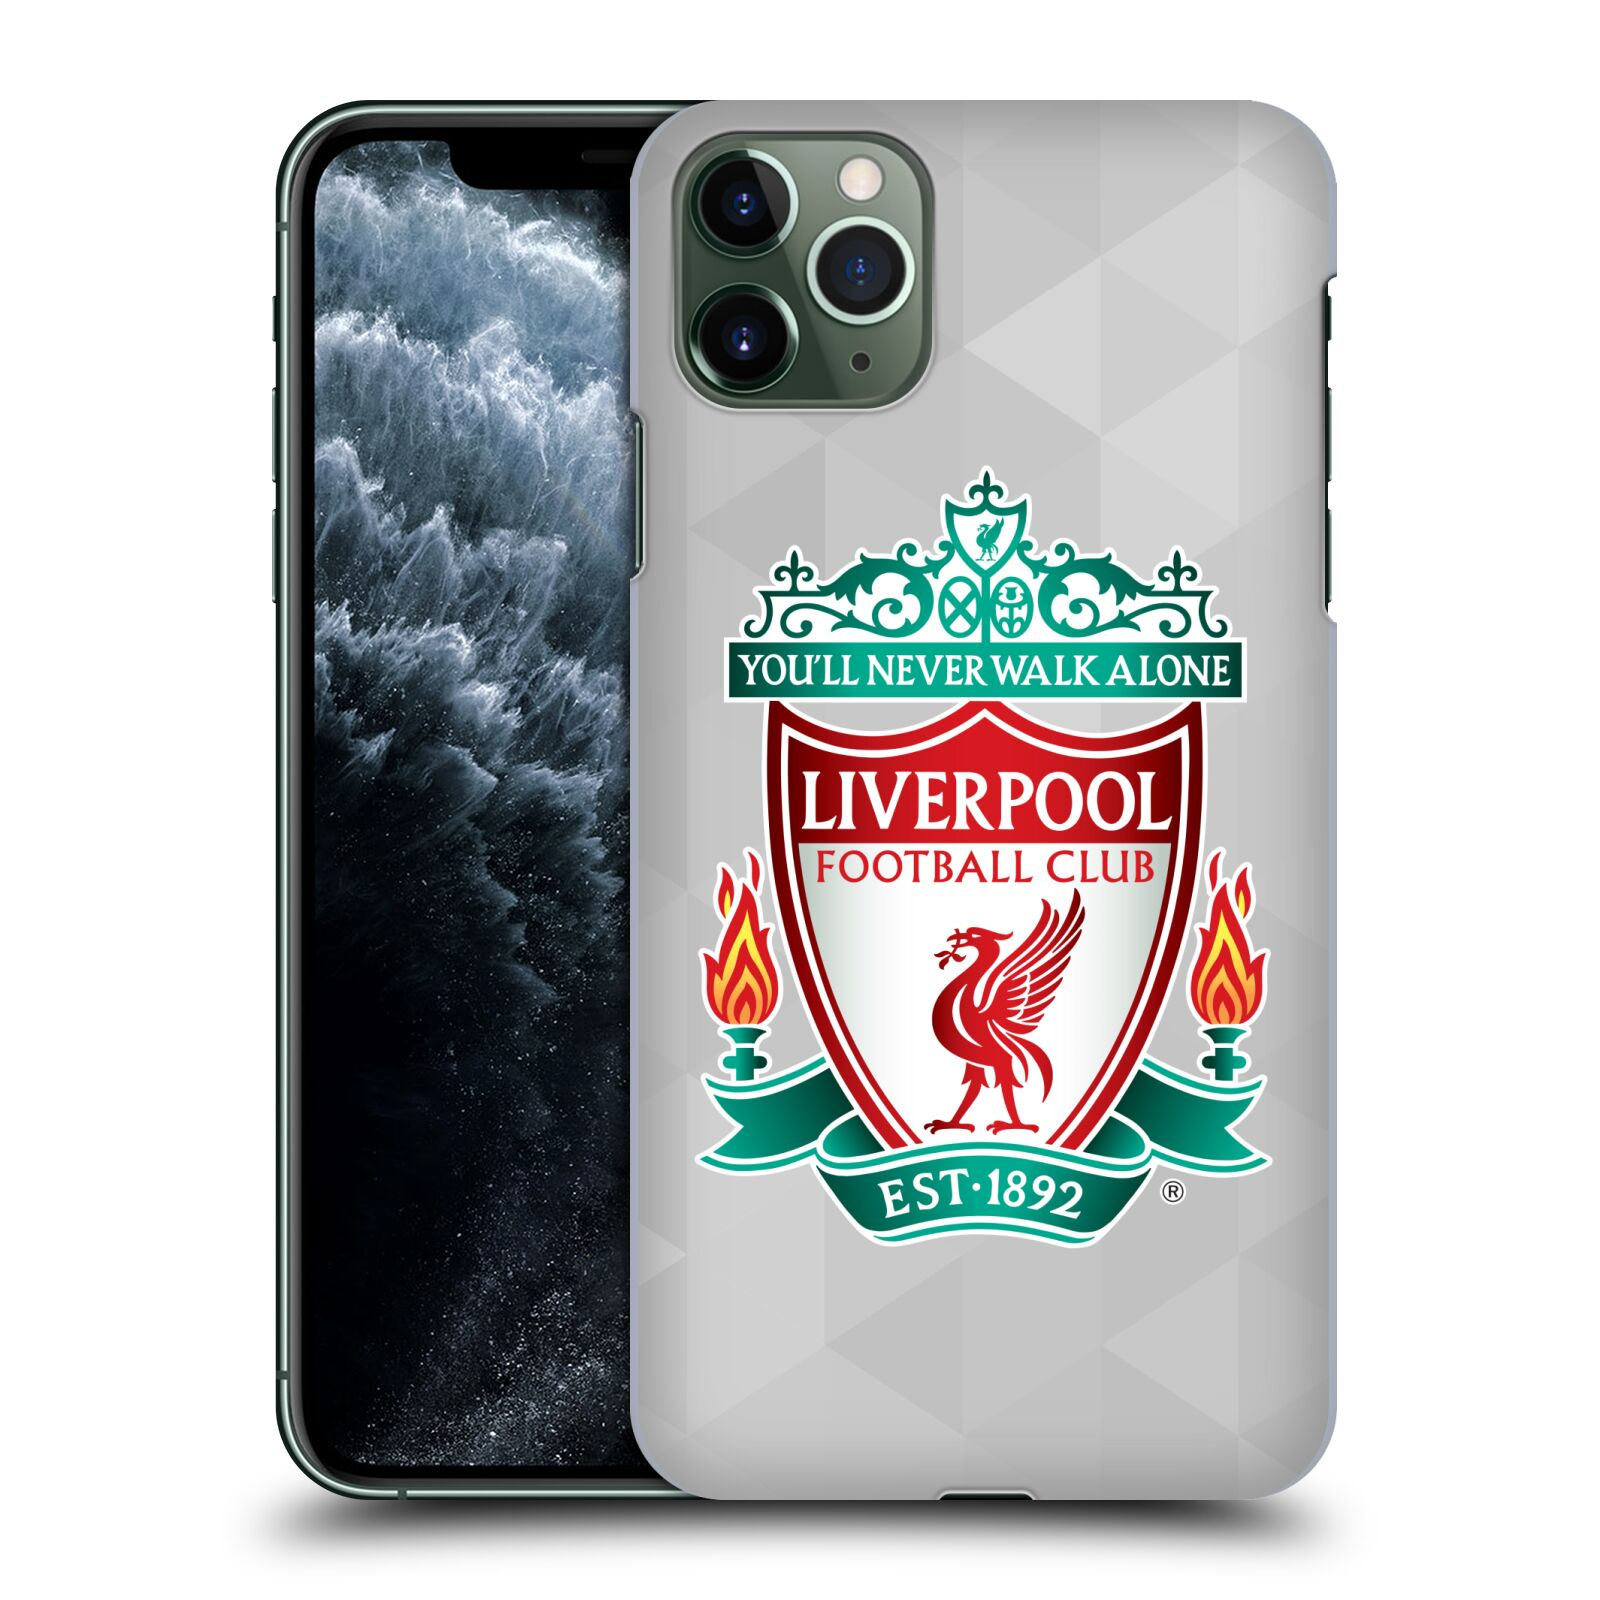 Plastové pouzdro na mobil Apple iPhone 11 Pro Max - Head Case - ZNAK LIVERPOOL FC OFFICIAL GEOMETRIC WHITE